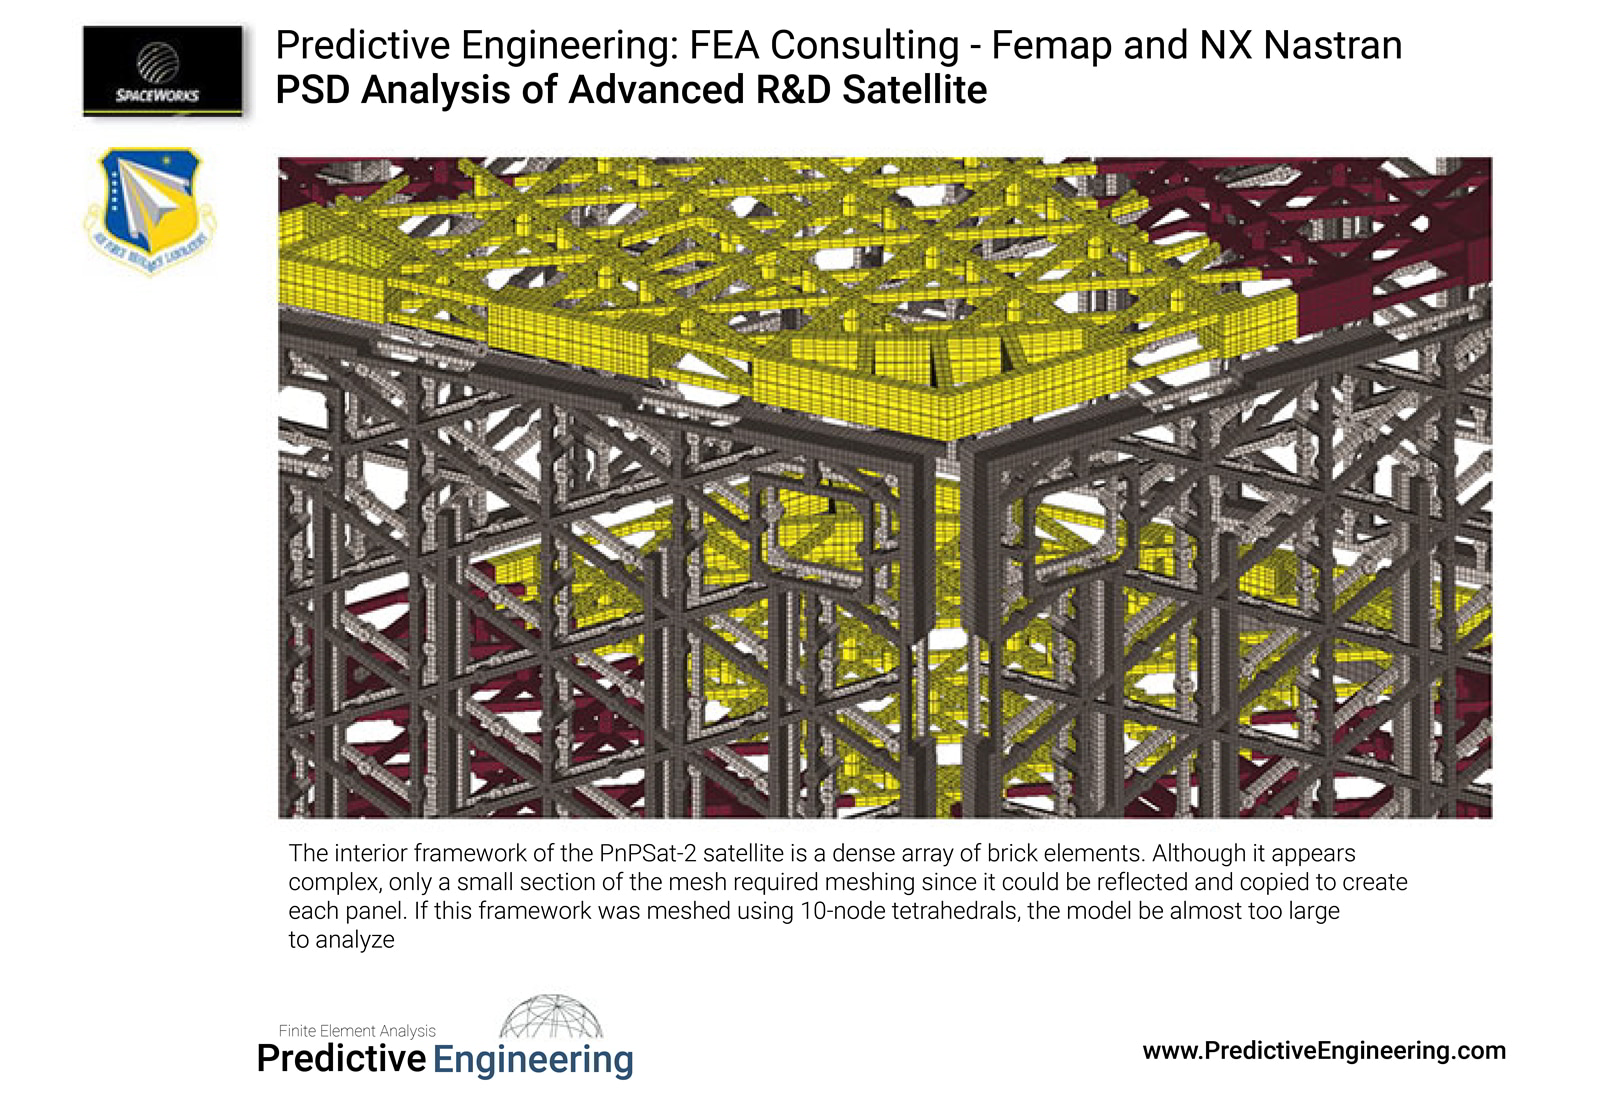 The interior framework of the PnPSat-2 satellite is a dense array of brick elements - Predictive Engineering FEA Consulting Services